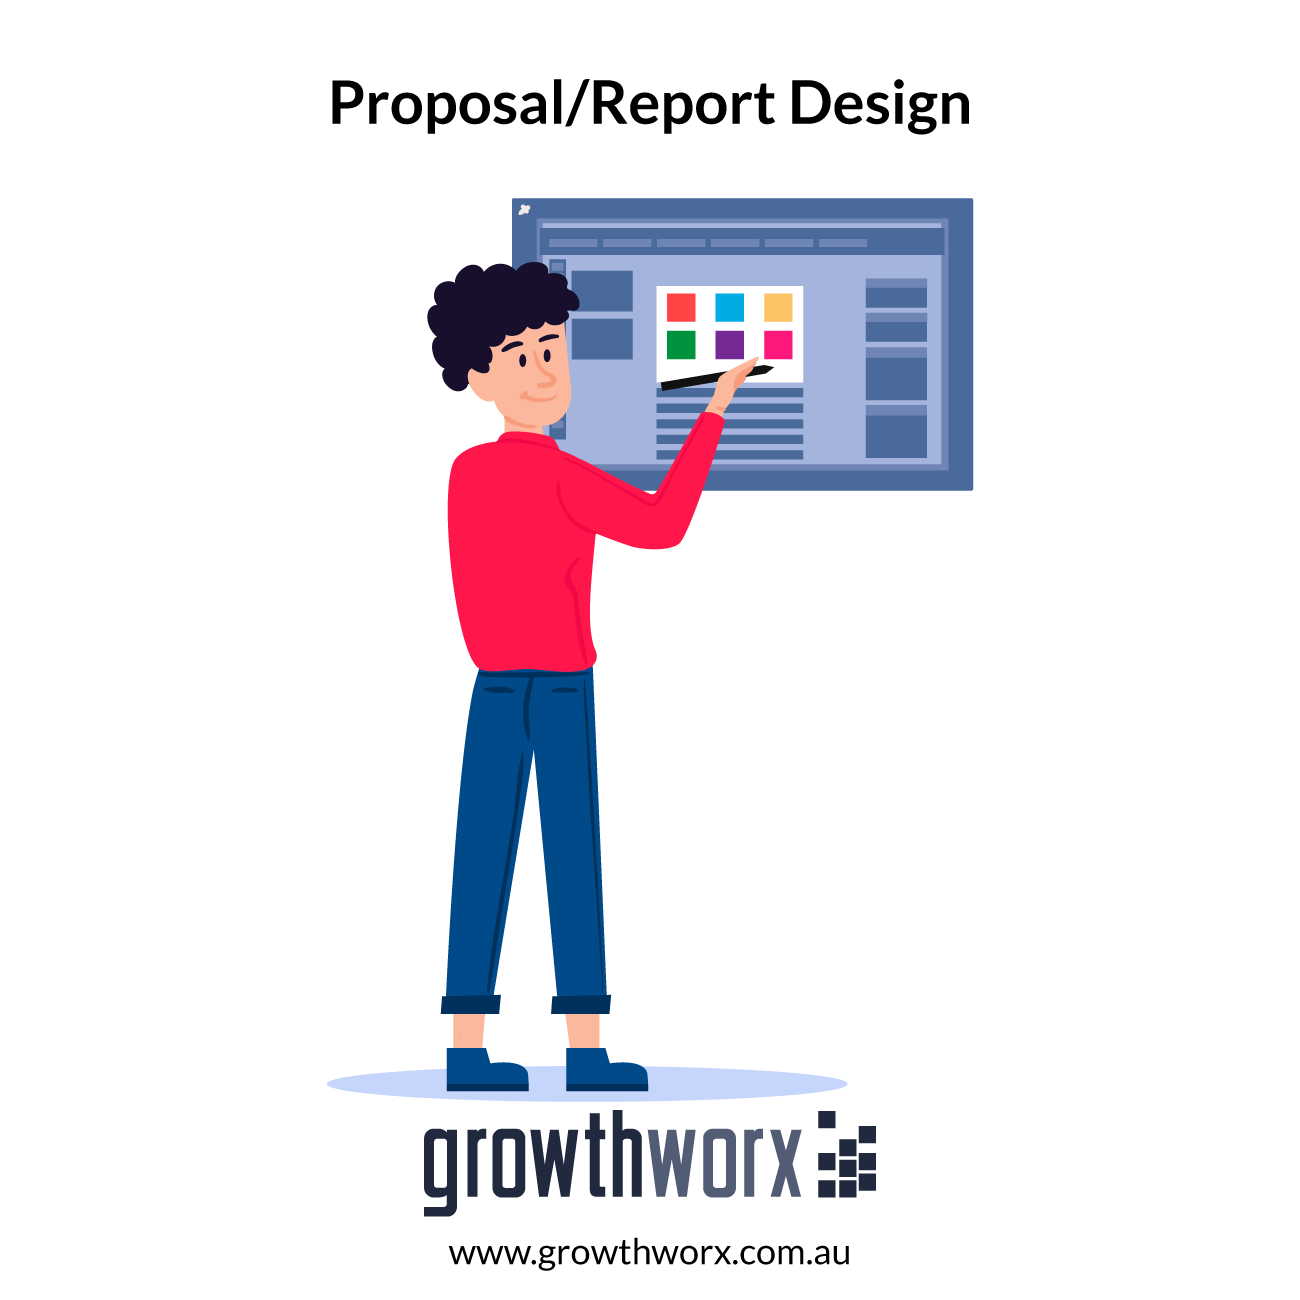 Design up to 10 pages proposal/report in pdf + original file. Cover included. 1